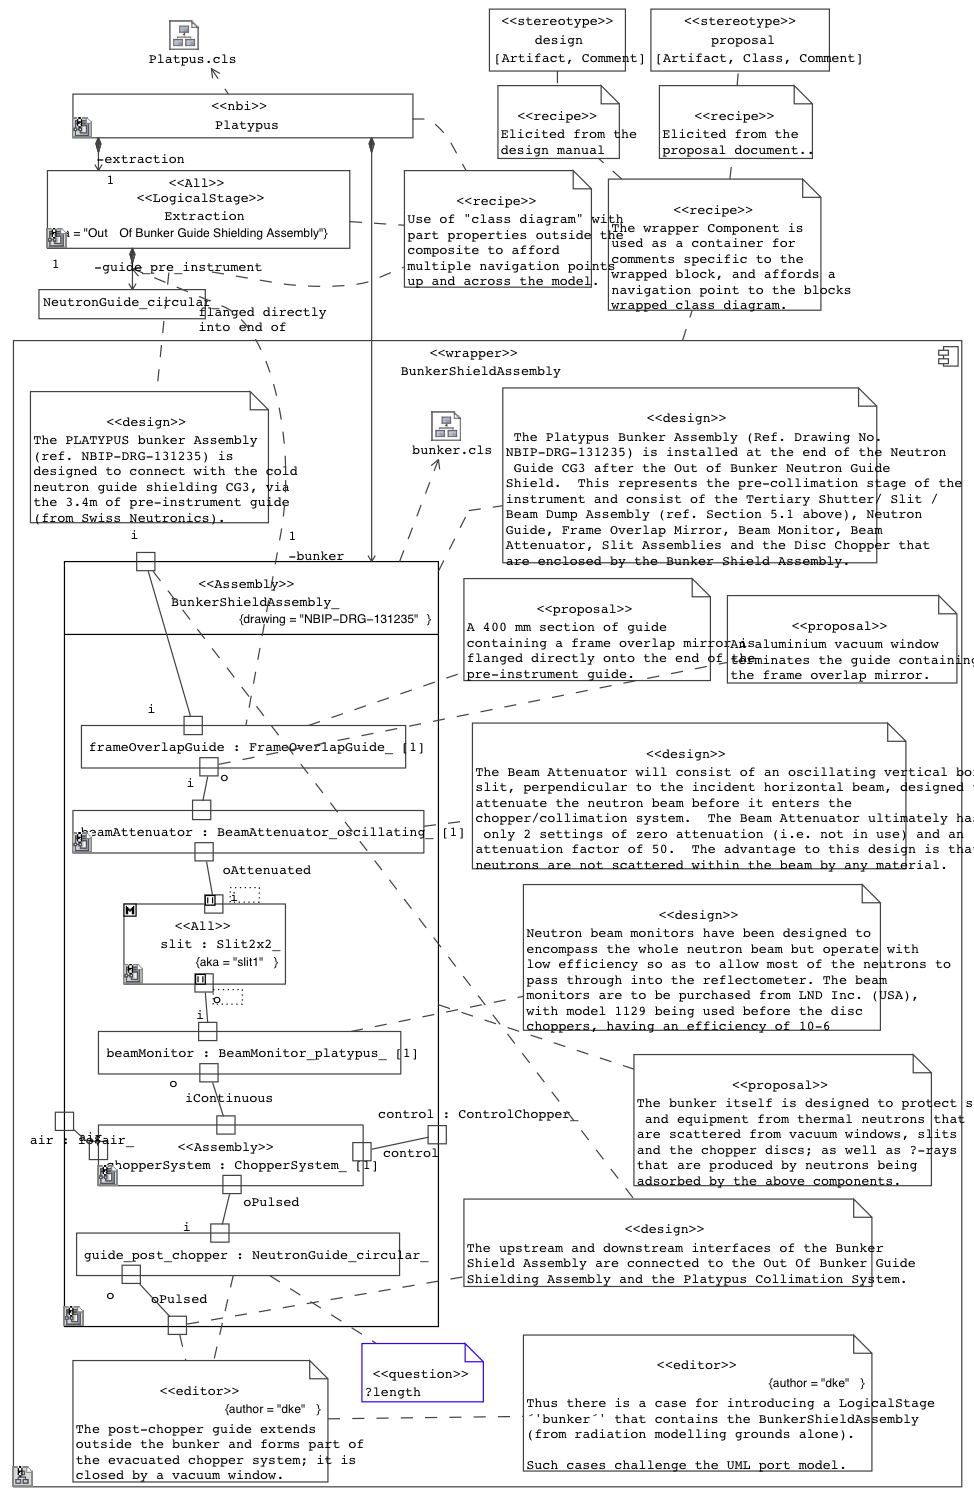 hight resolution of figure 08 model bunker shield assembly for the the platypus reflectometer as uml2 composite structure diagram with flowport notation